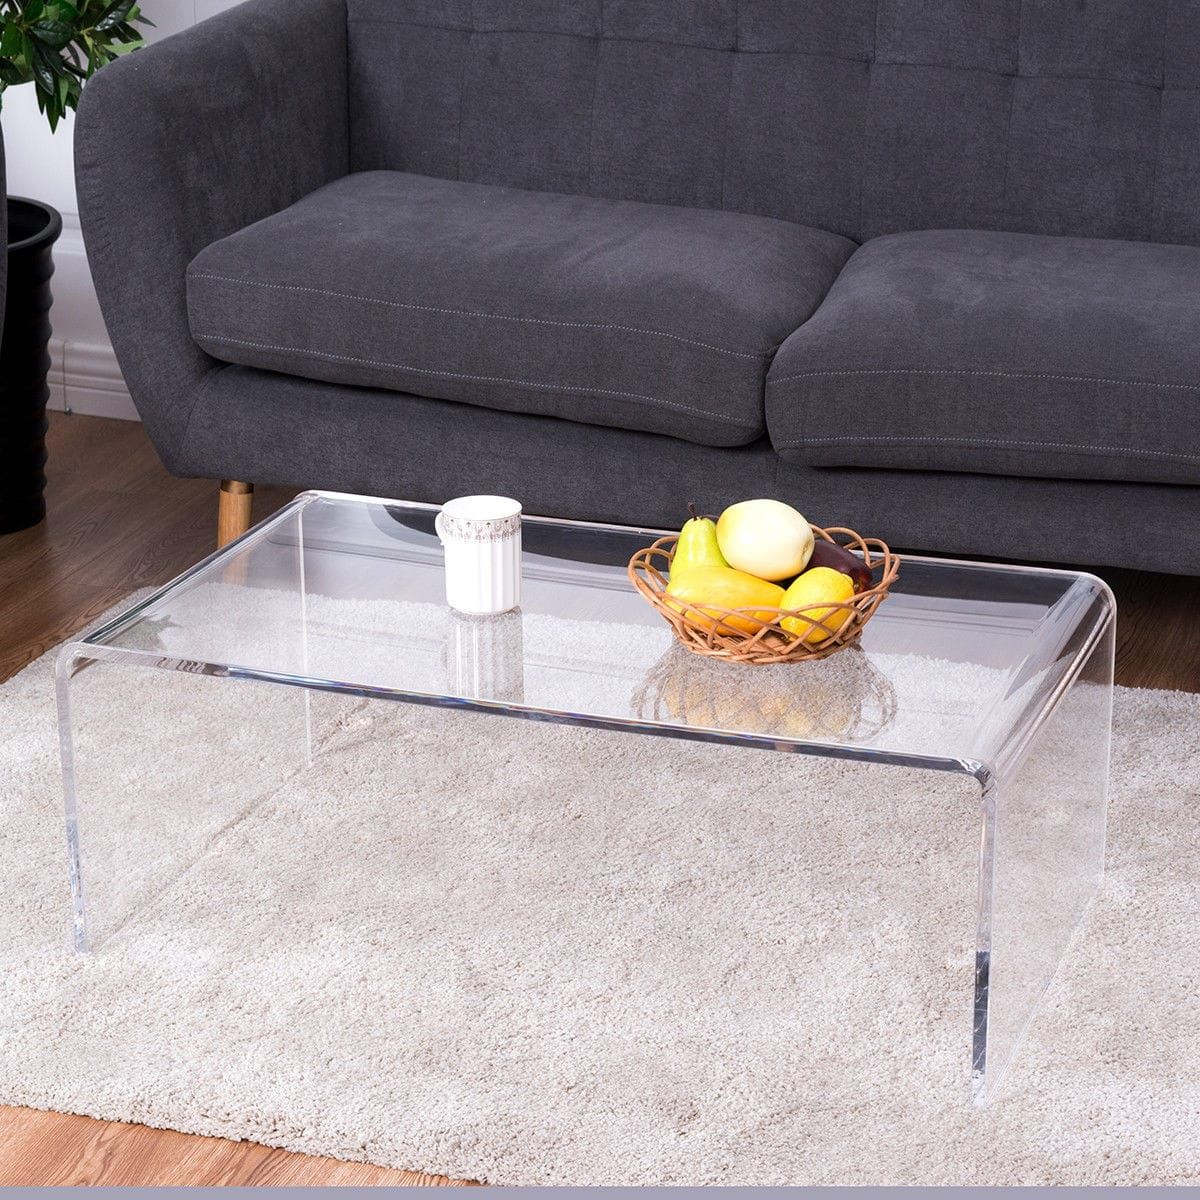 Costway Clear Acrylic Coffee Table Cocktail Waterfall 37 X 21 17 Inch Home Decor